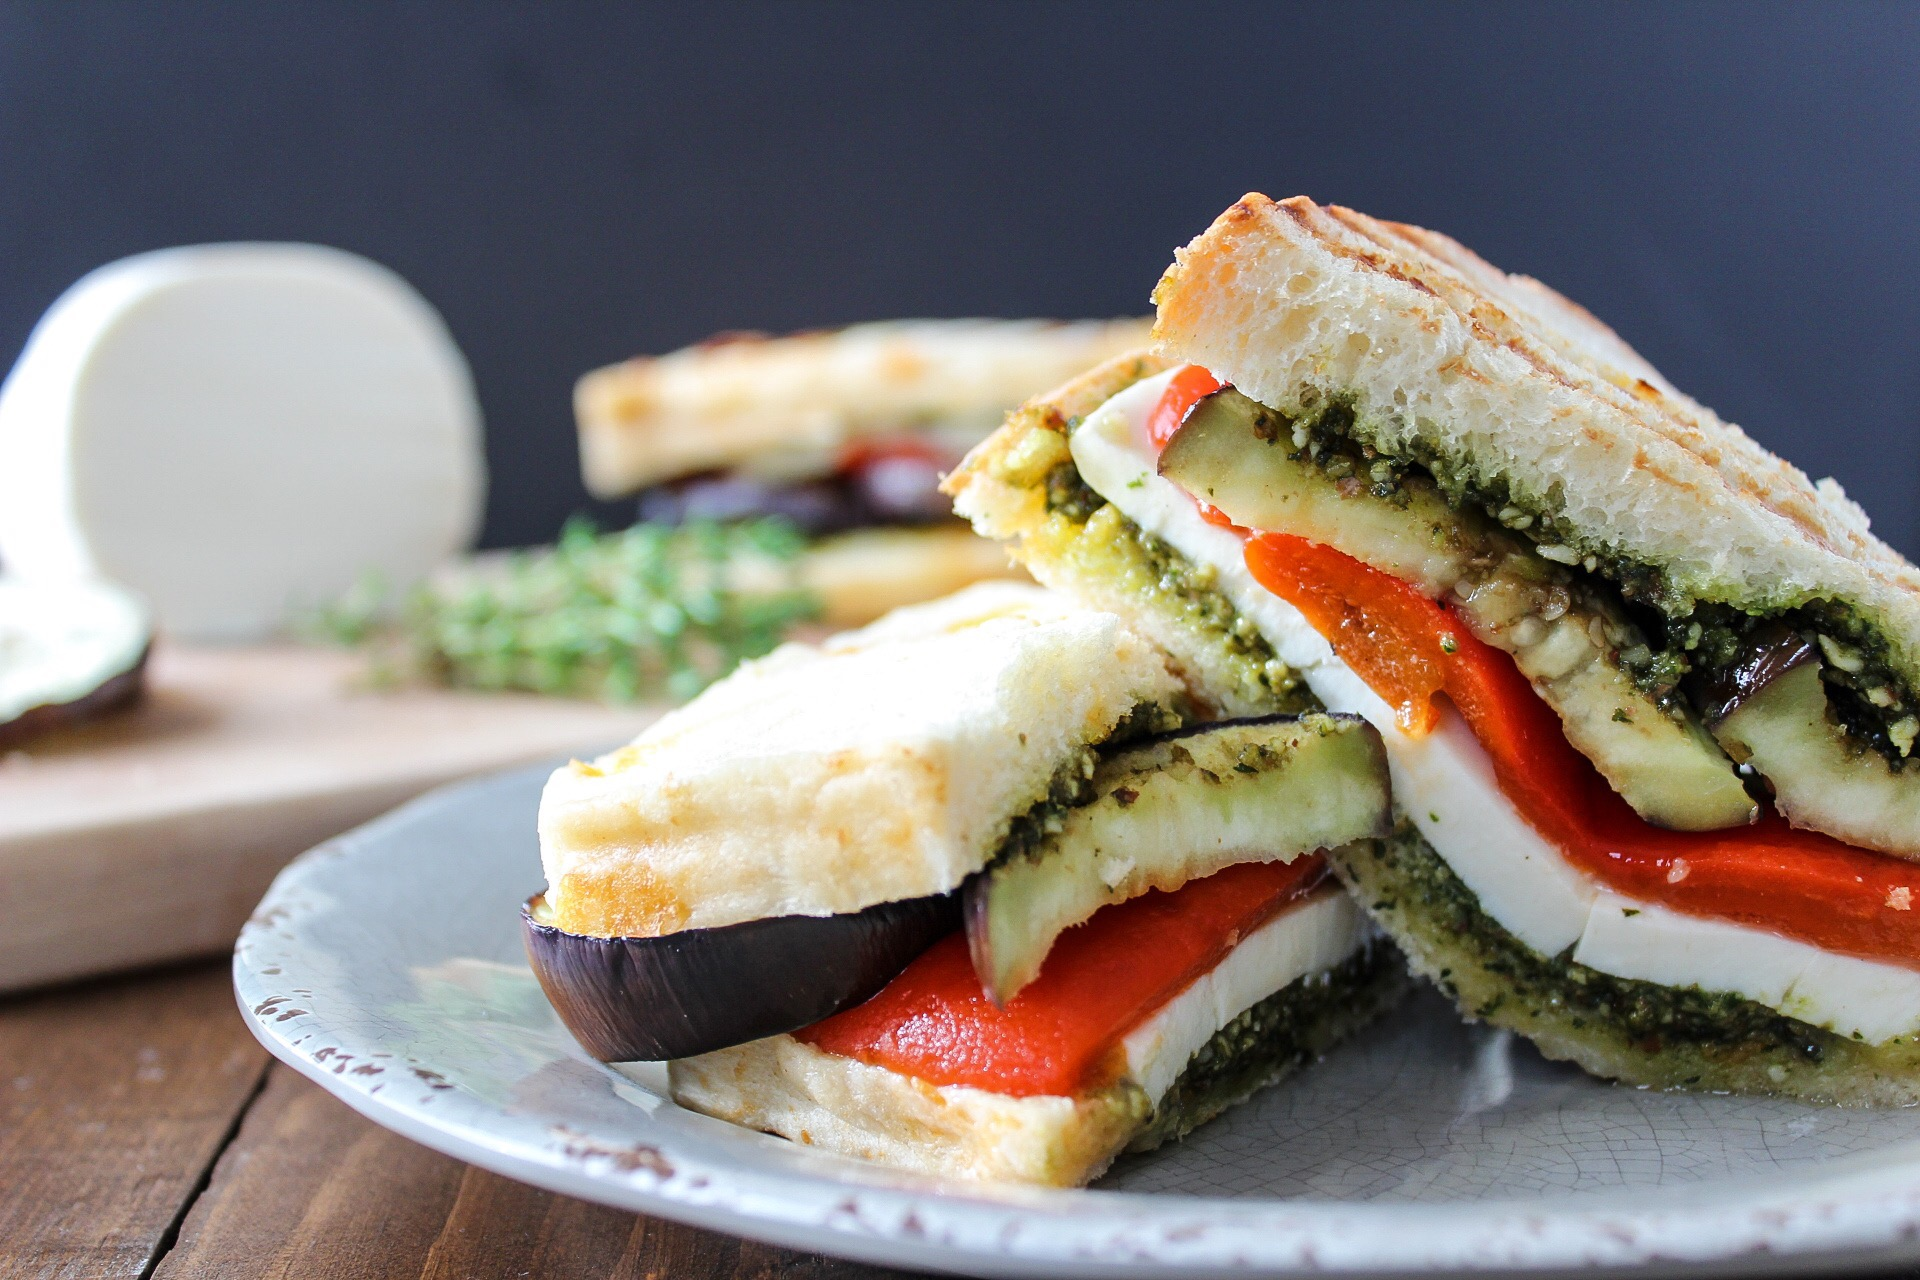 Every Now And Then I Find A Vegetarian Recipe That Just Love This Panini Was Exactly The Warm Crunchy Bread Melted Mozzarella Cheese Tasted